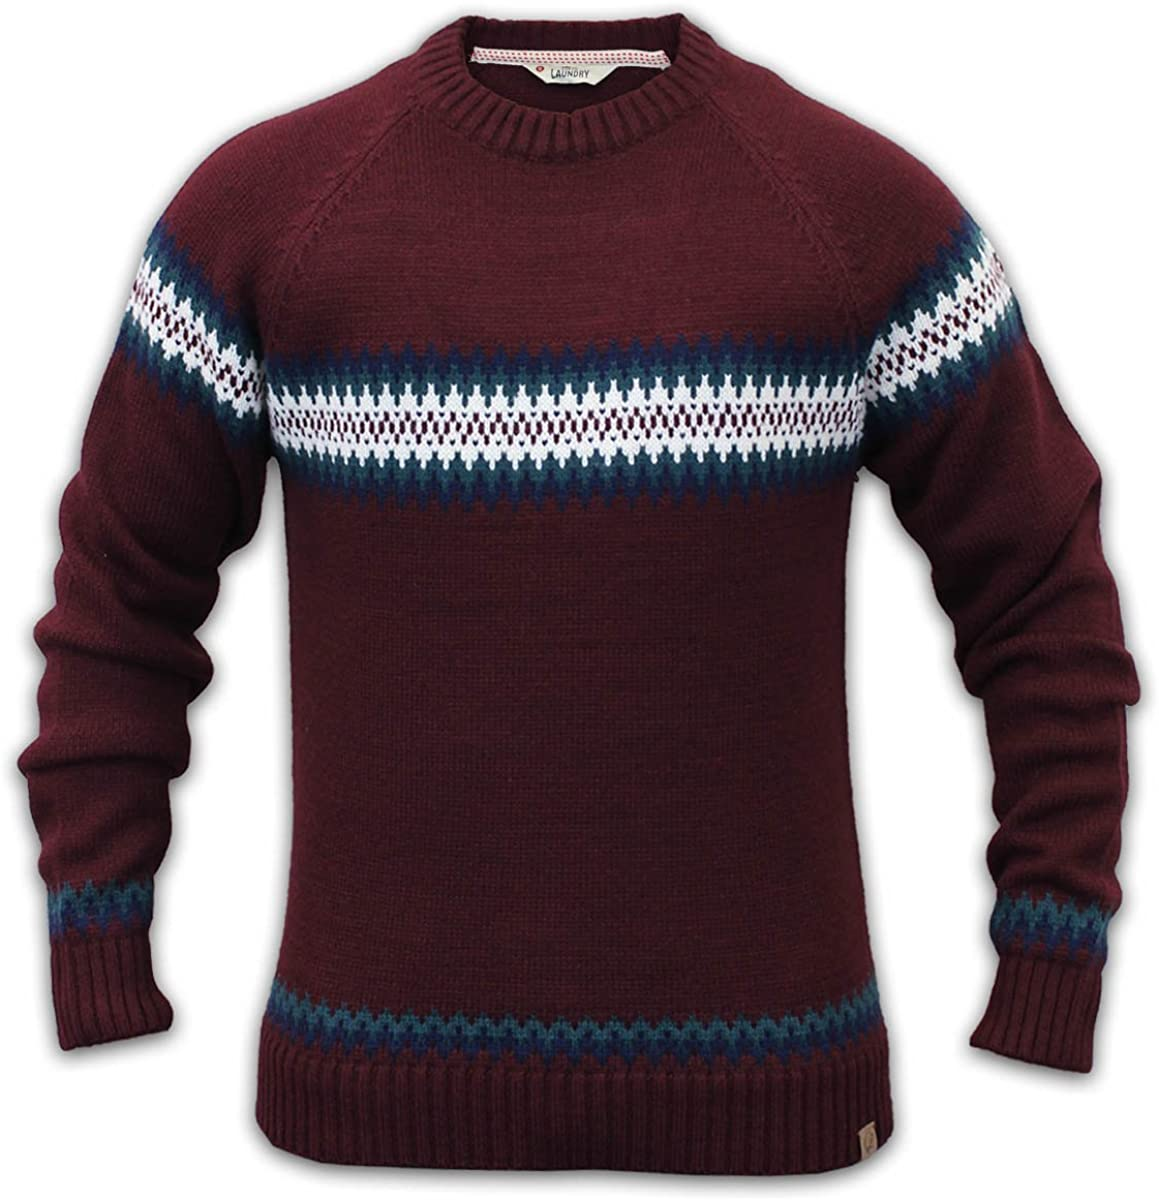 Tokyo Laundry Mens Stylish Wool Mix Knitted Jumpers 1A3054